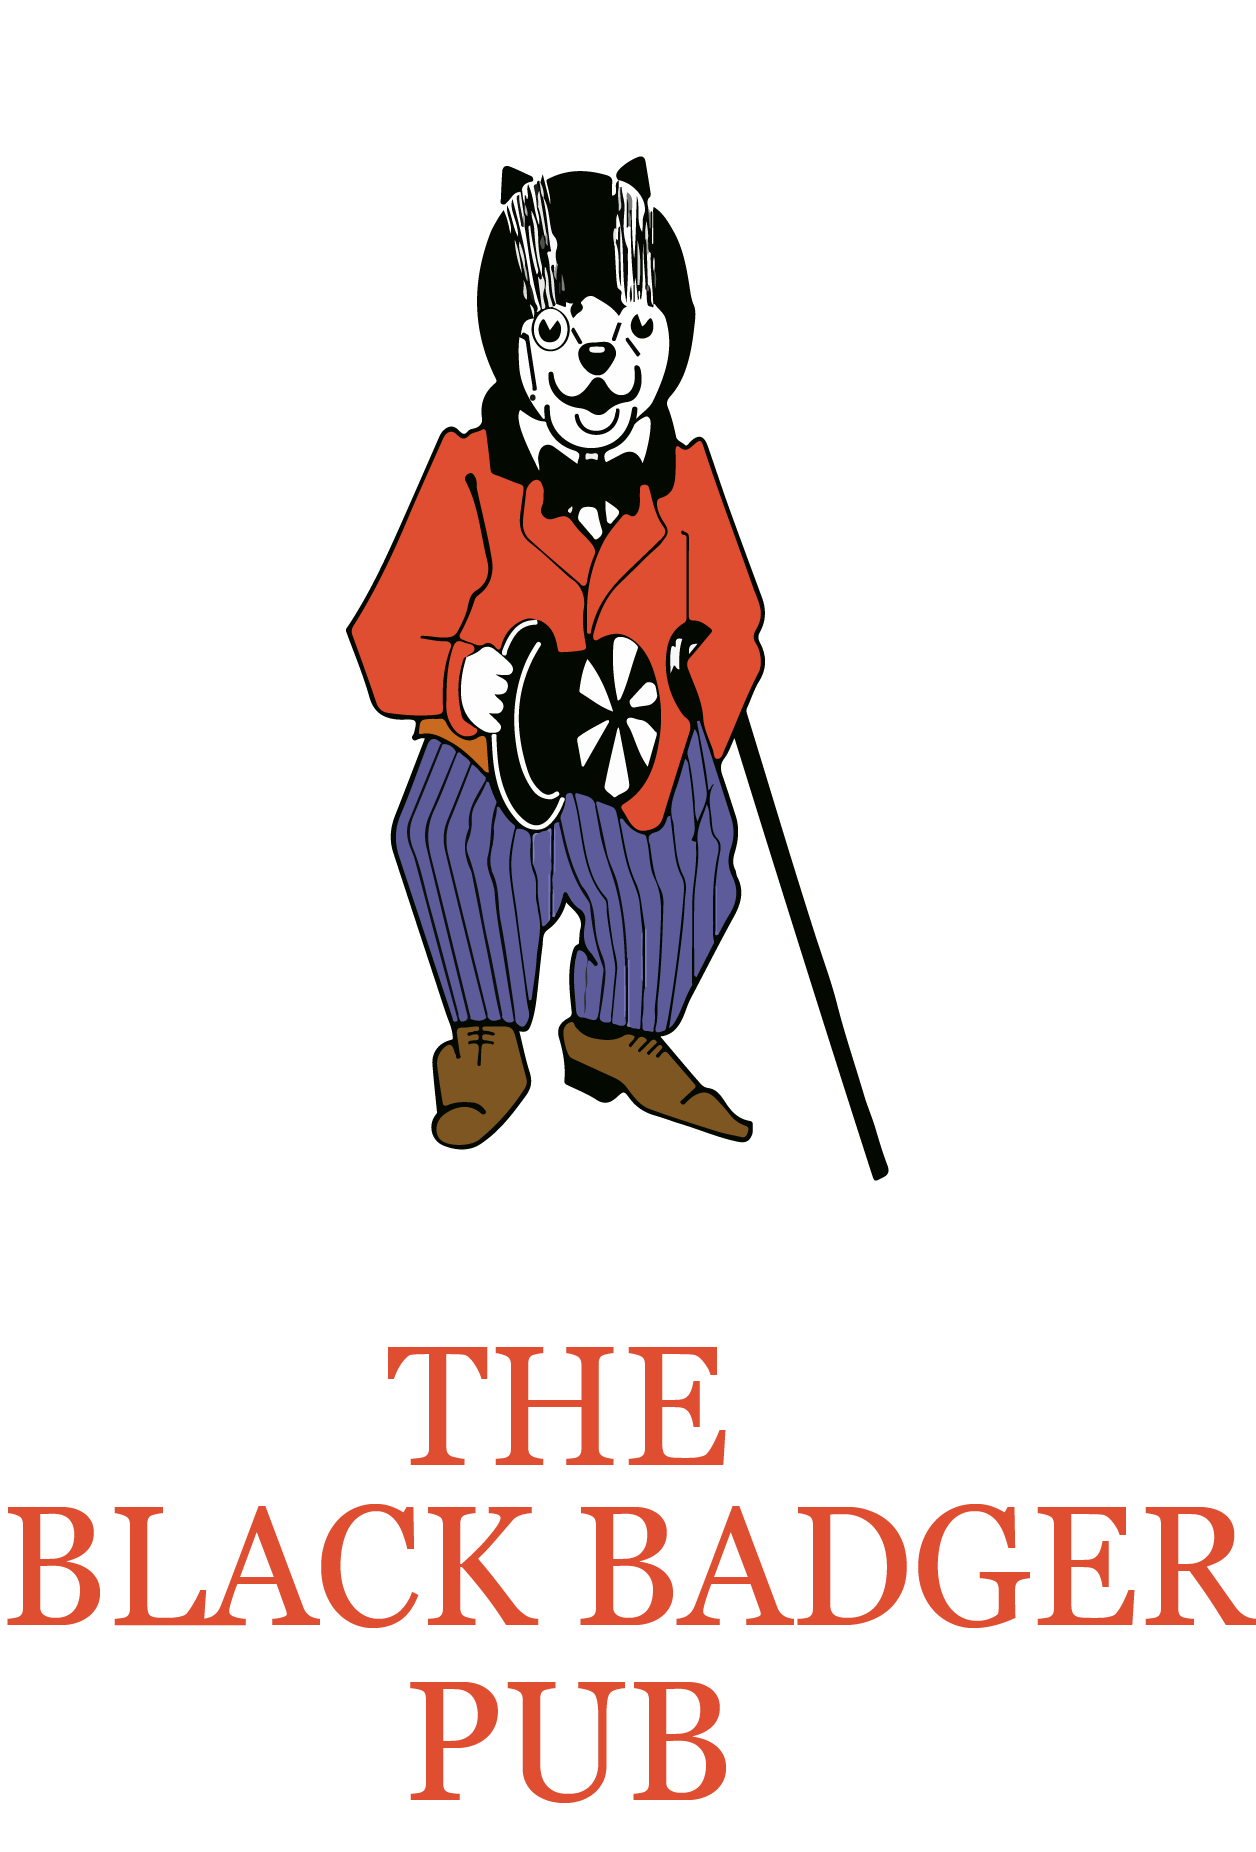 The Black Badger